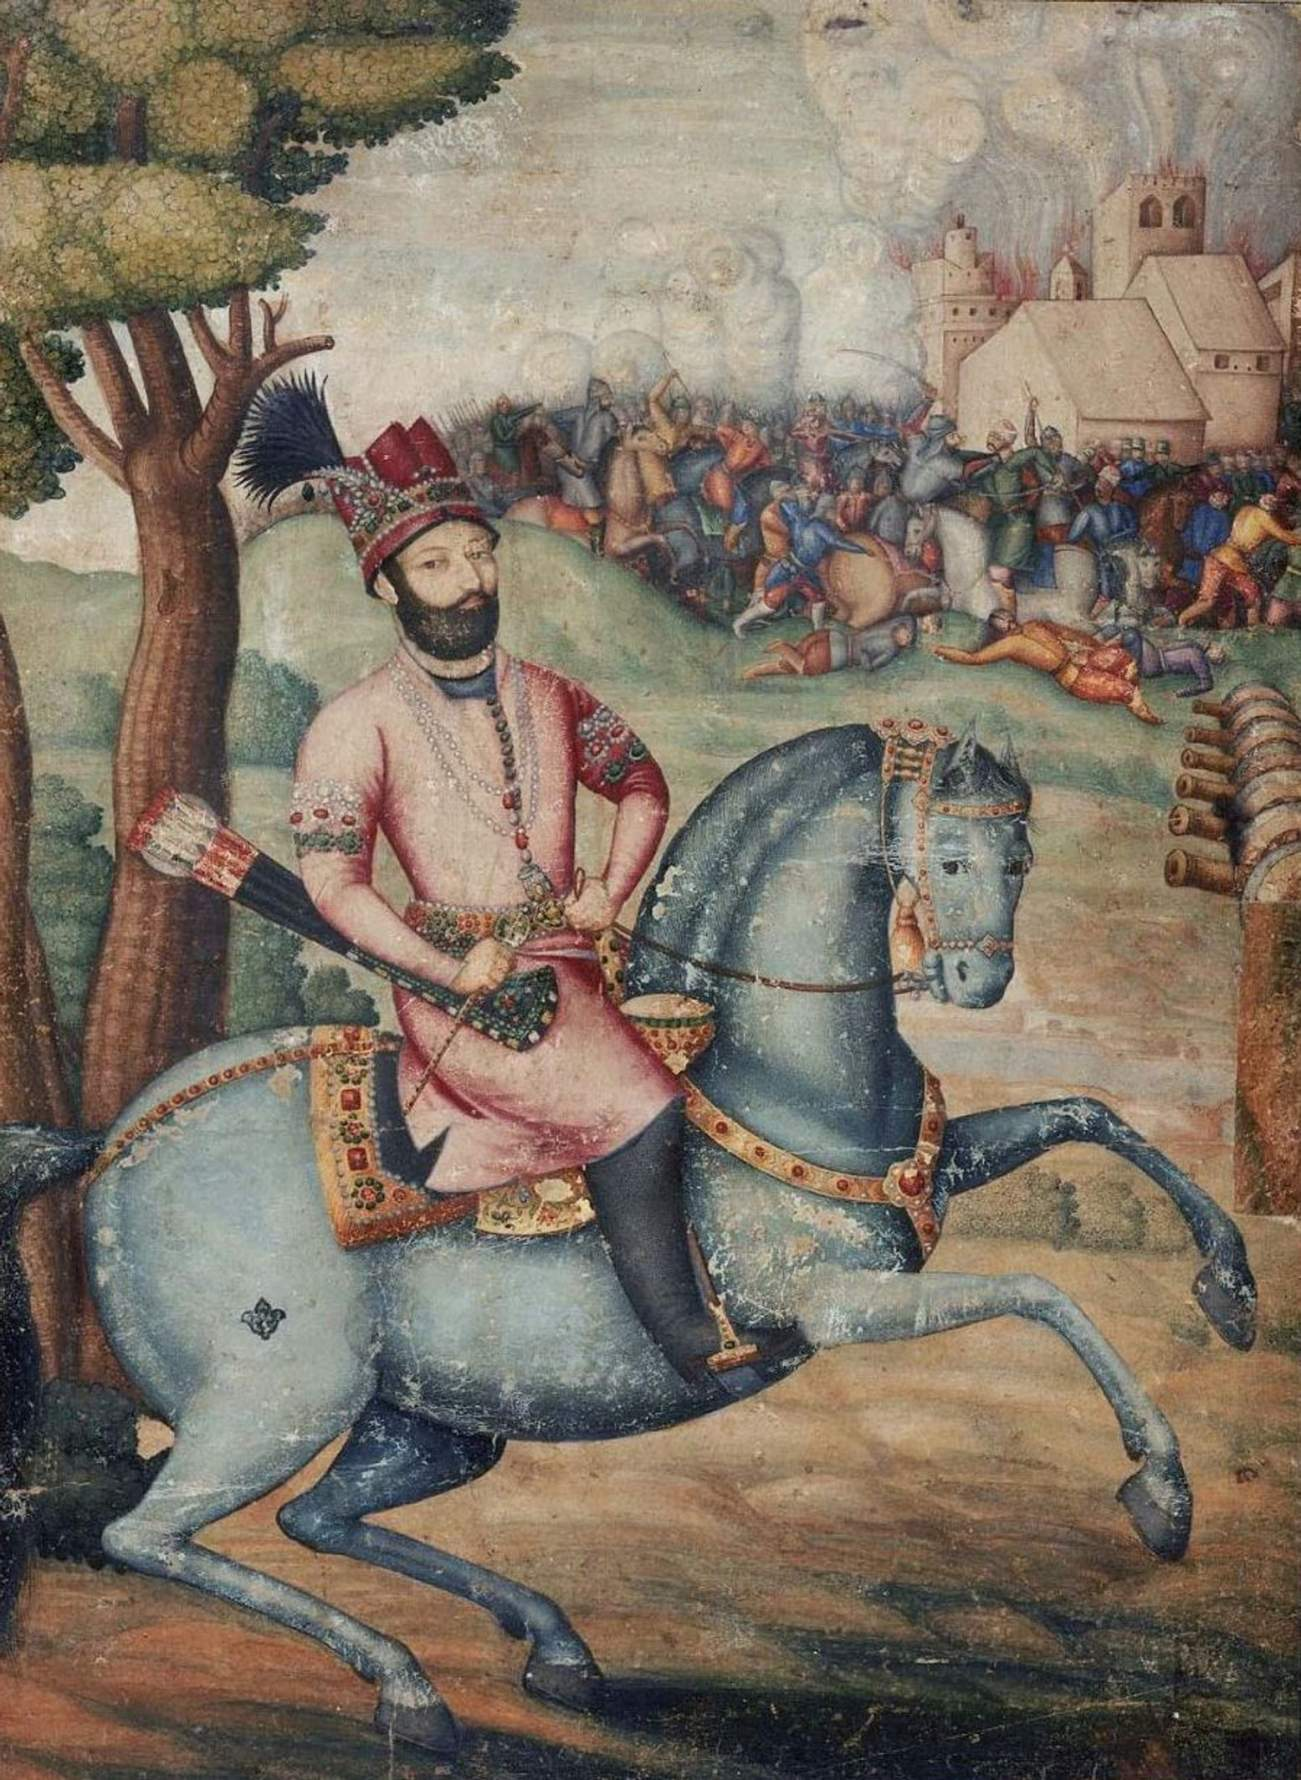 Get Your History Book Out: The 5 Battles that Created India